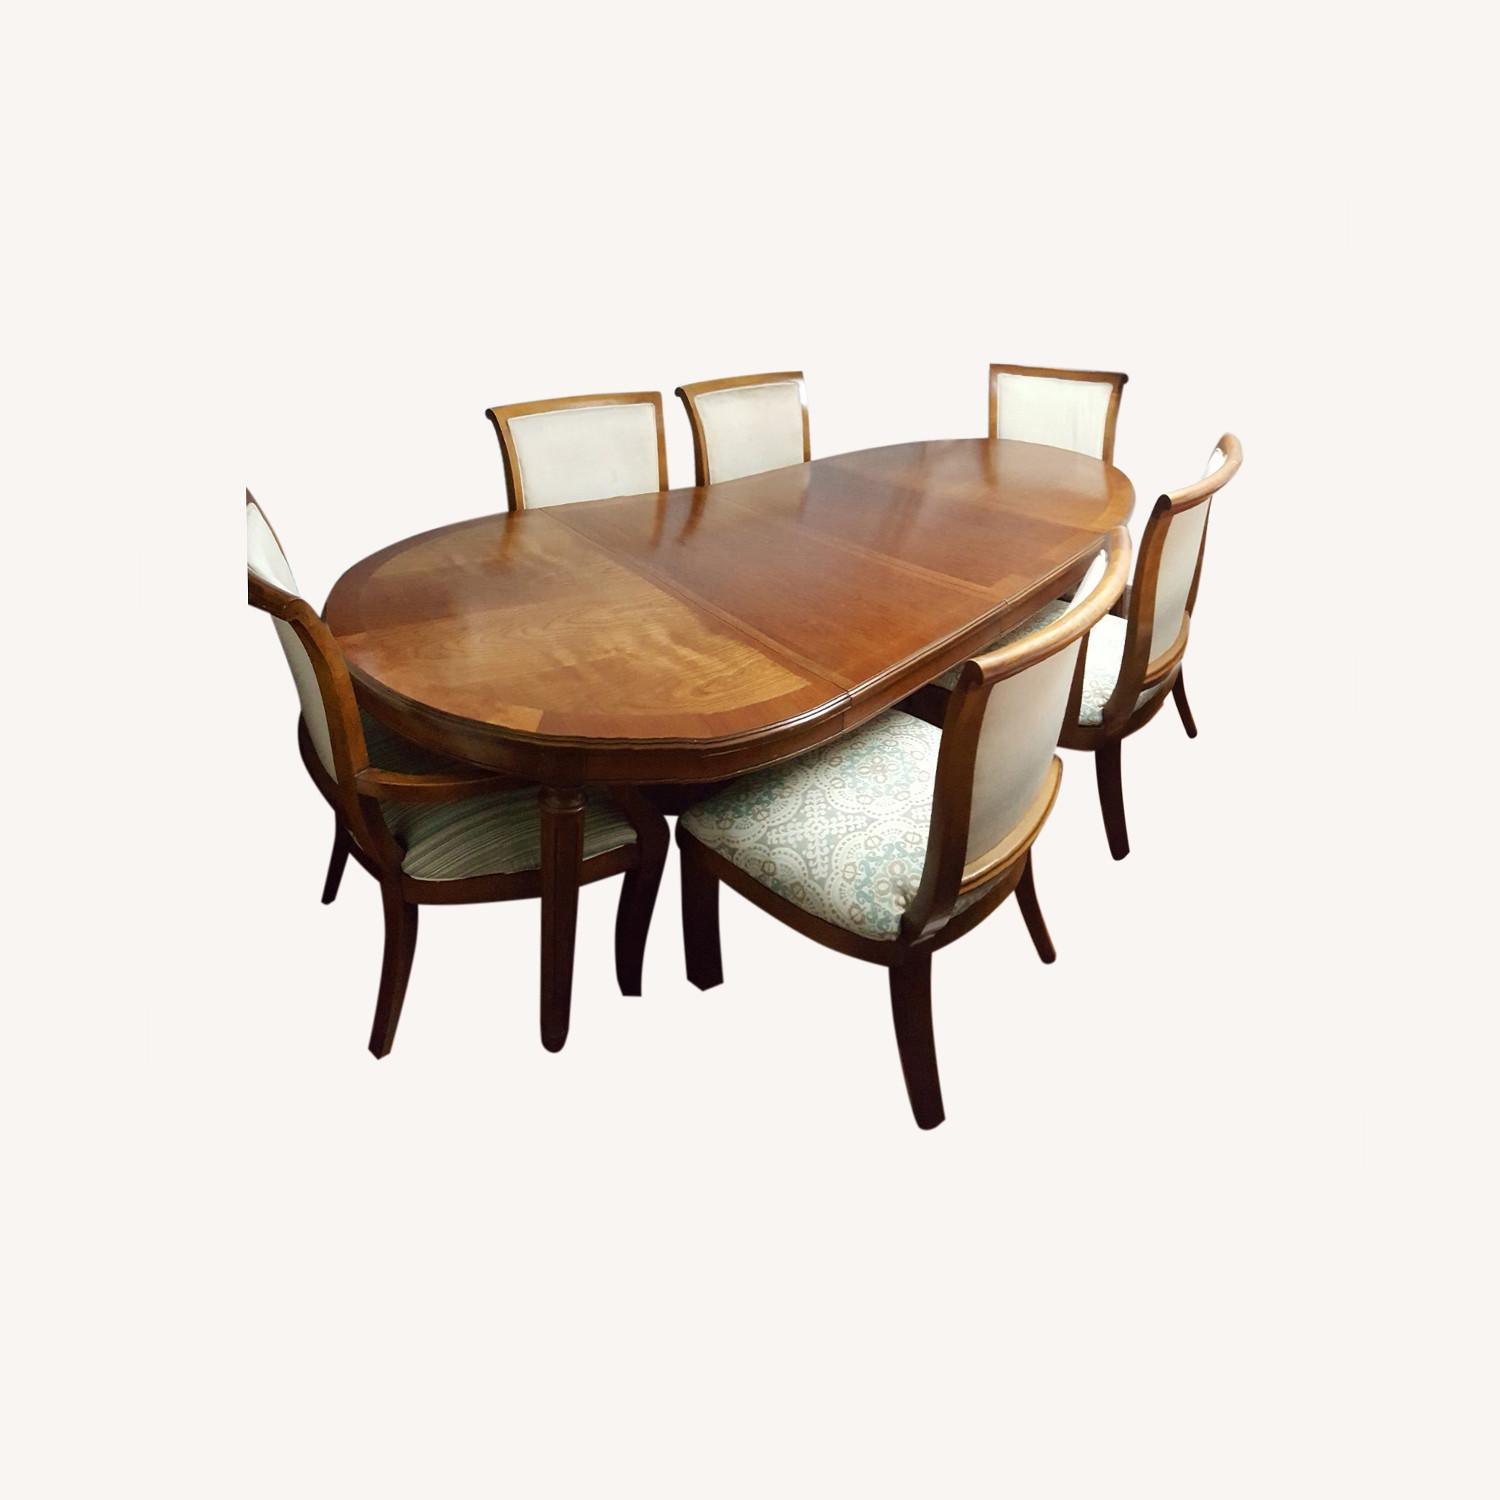 8pcs Oval Dining, Table With Removable Leaf, Set - image-0